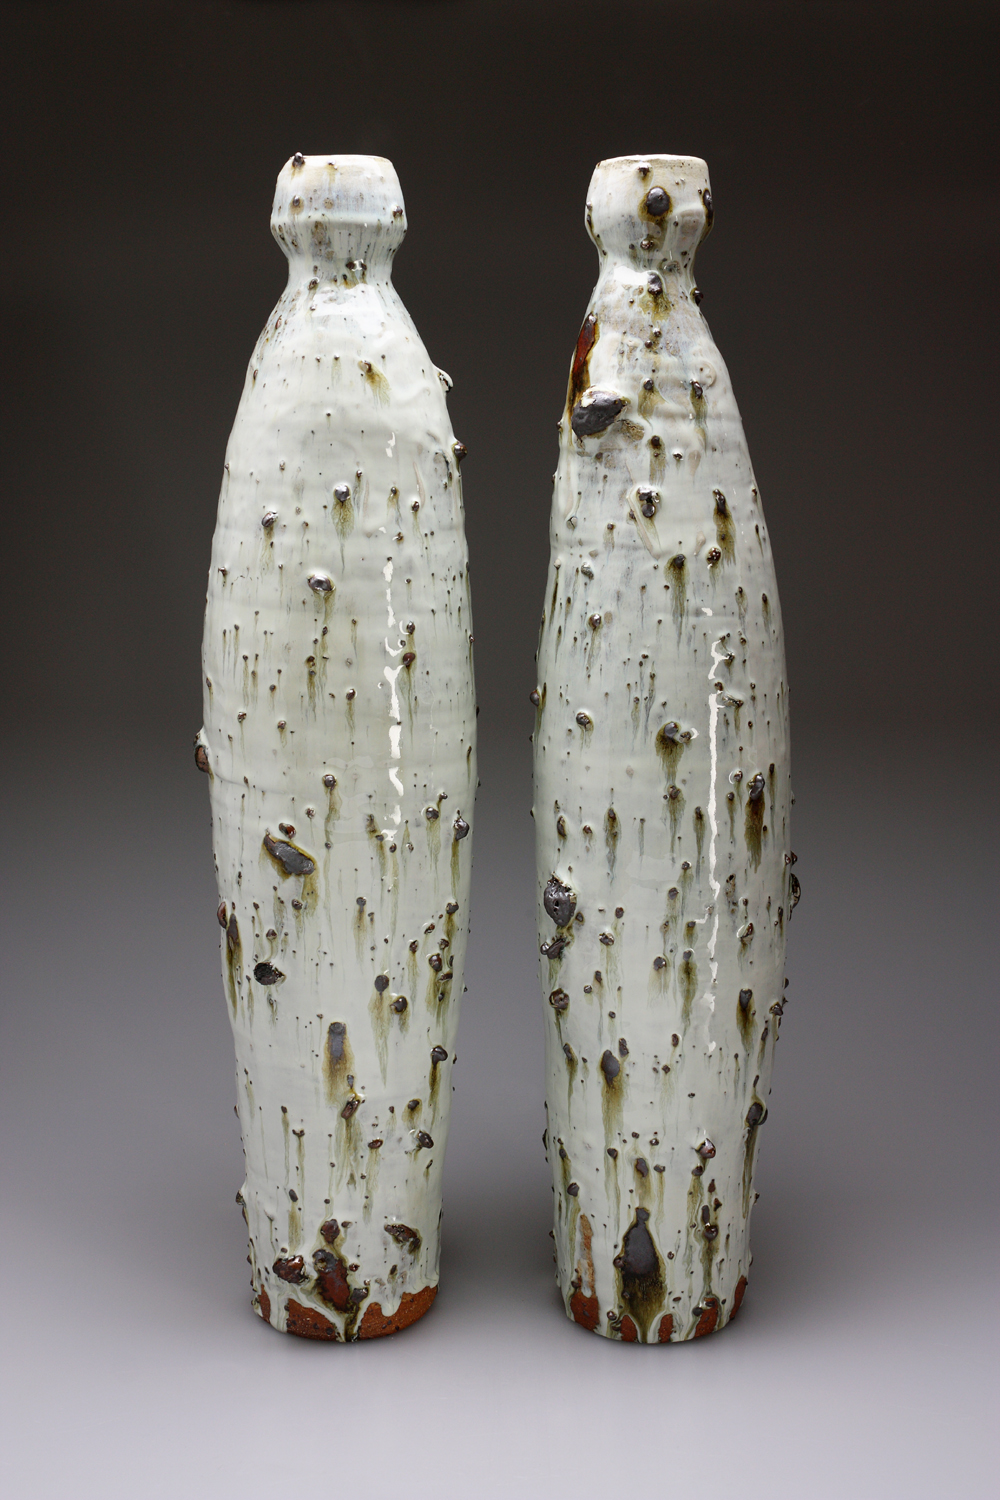 Two Tall Bottle Forms